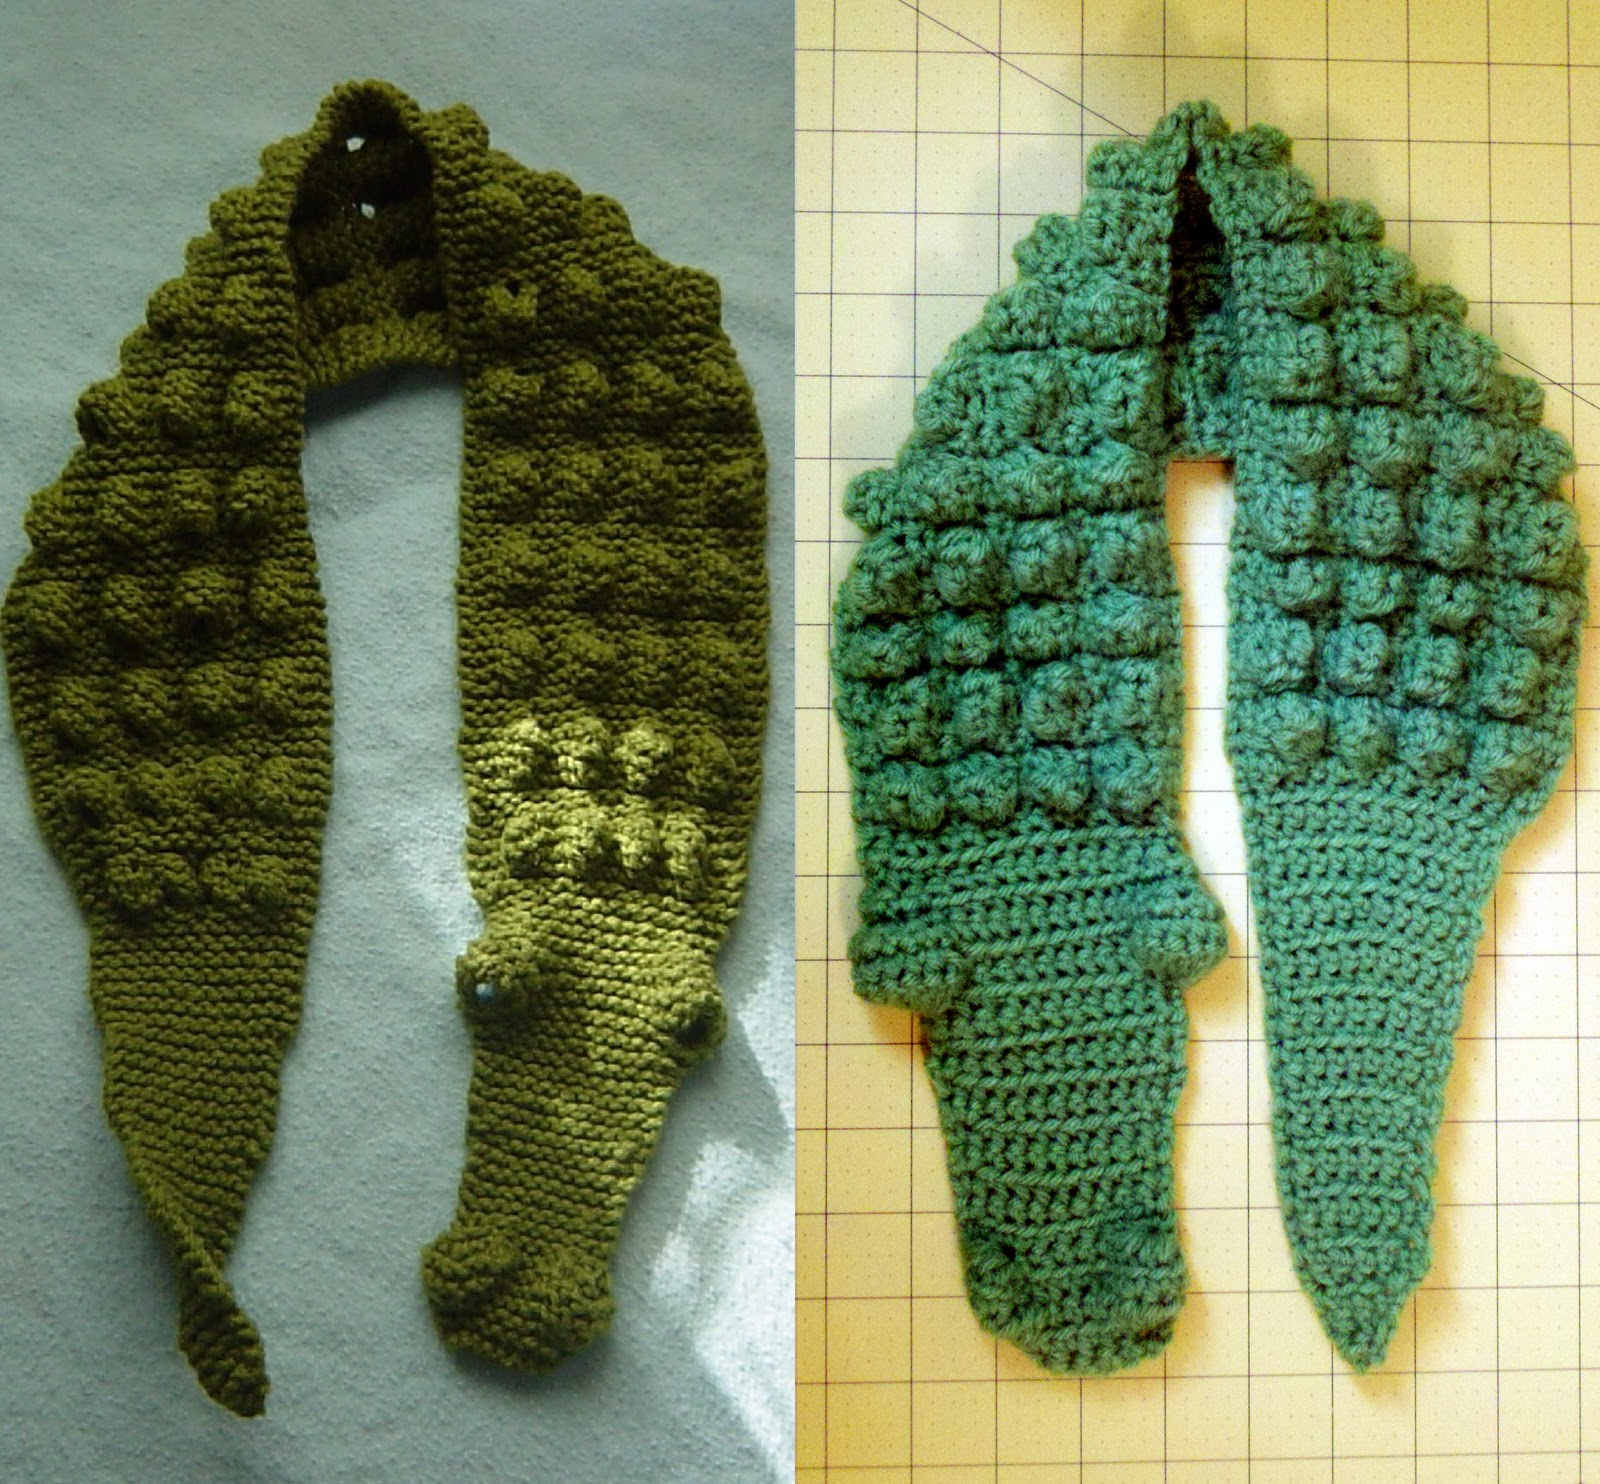 Bright and Shiny - Lovely and Good: Crochet Gator Scarf ...